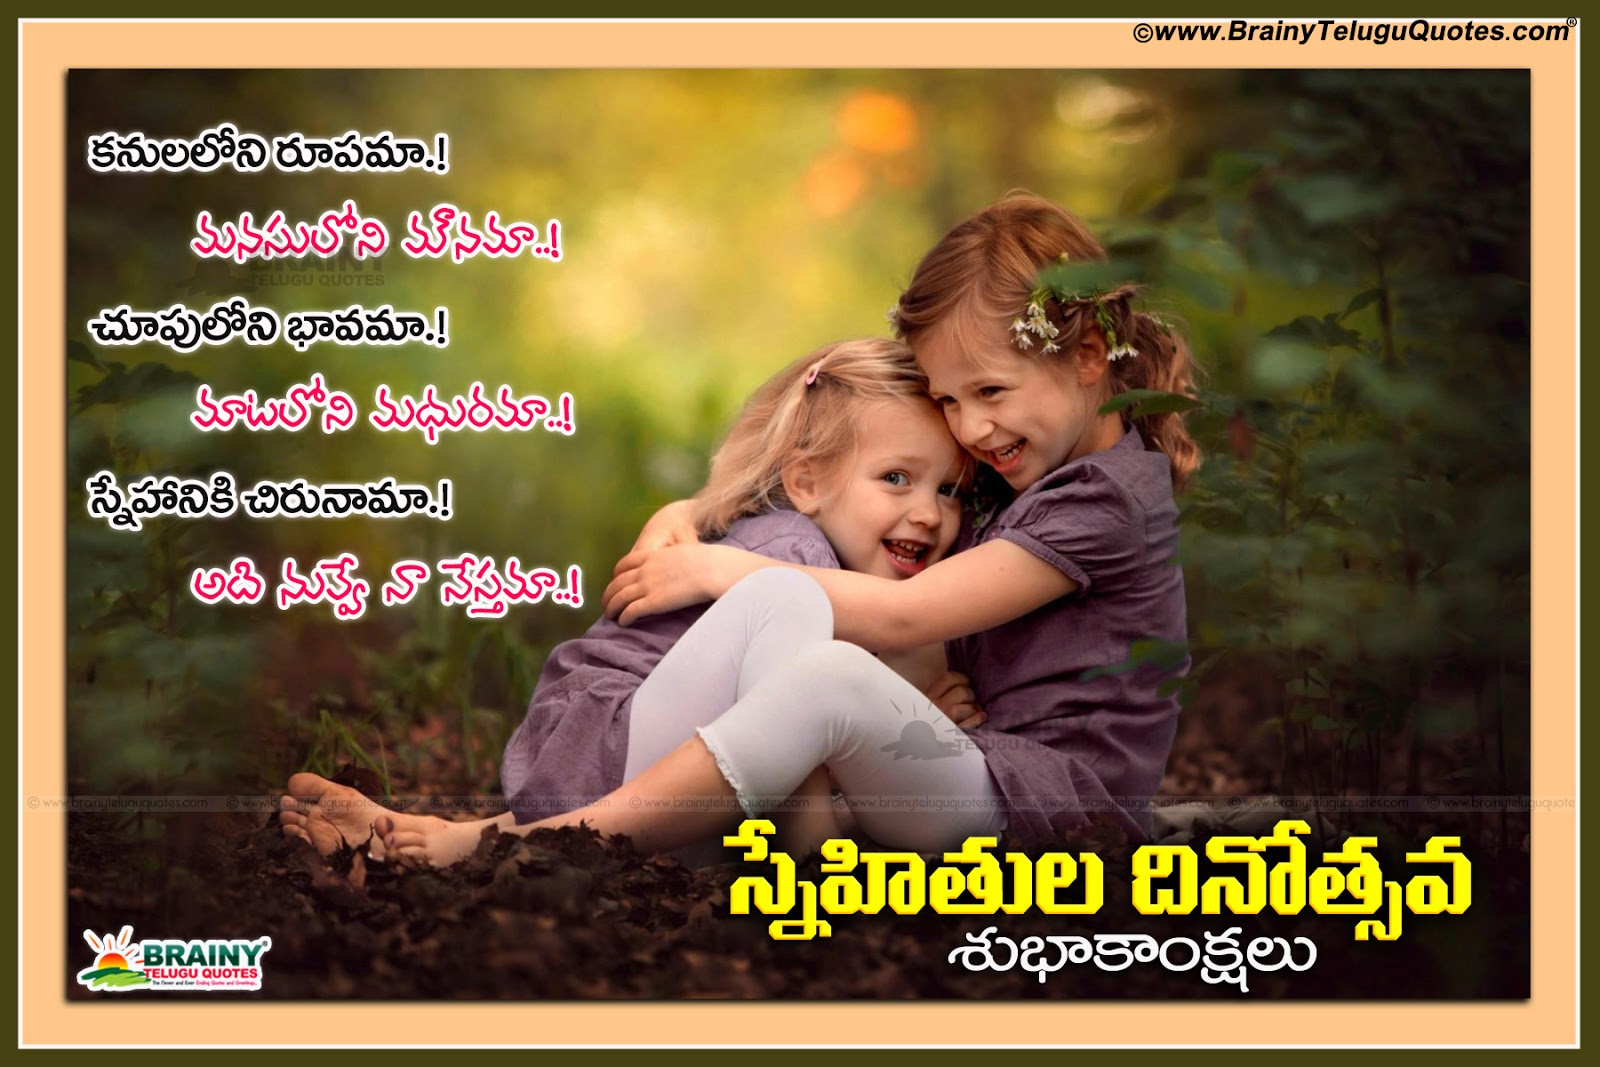 Telugu friendship day Greetings wishes Quotes for girls ...